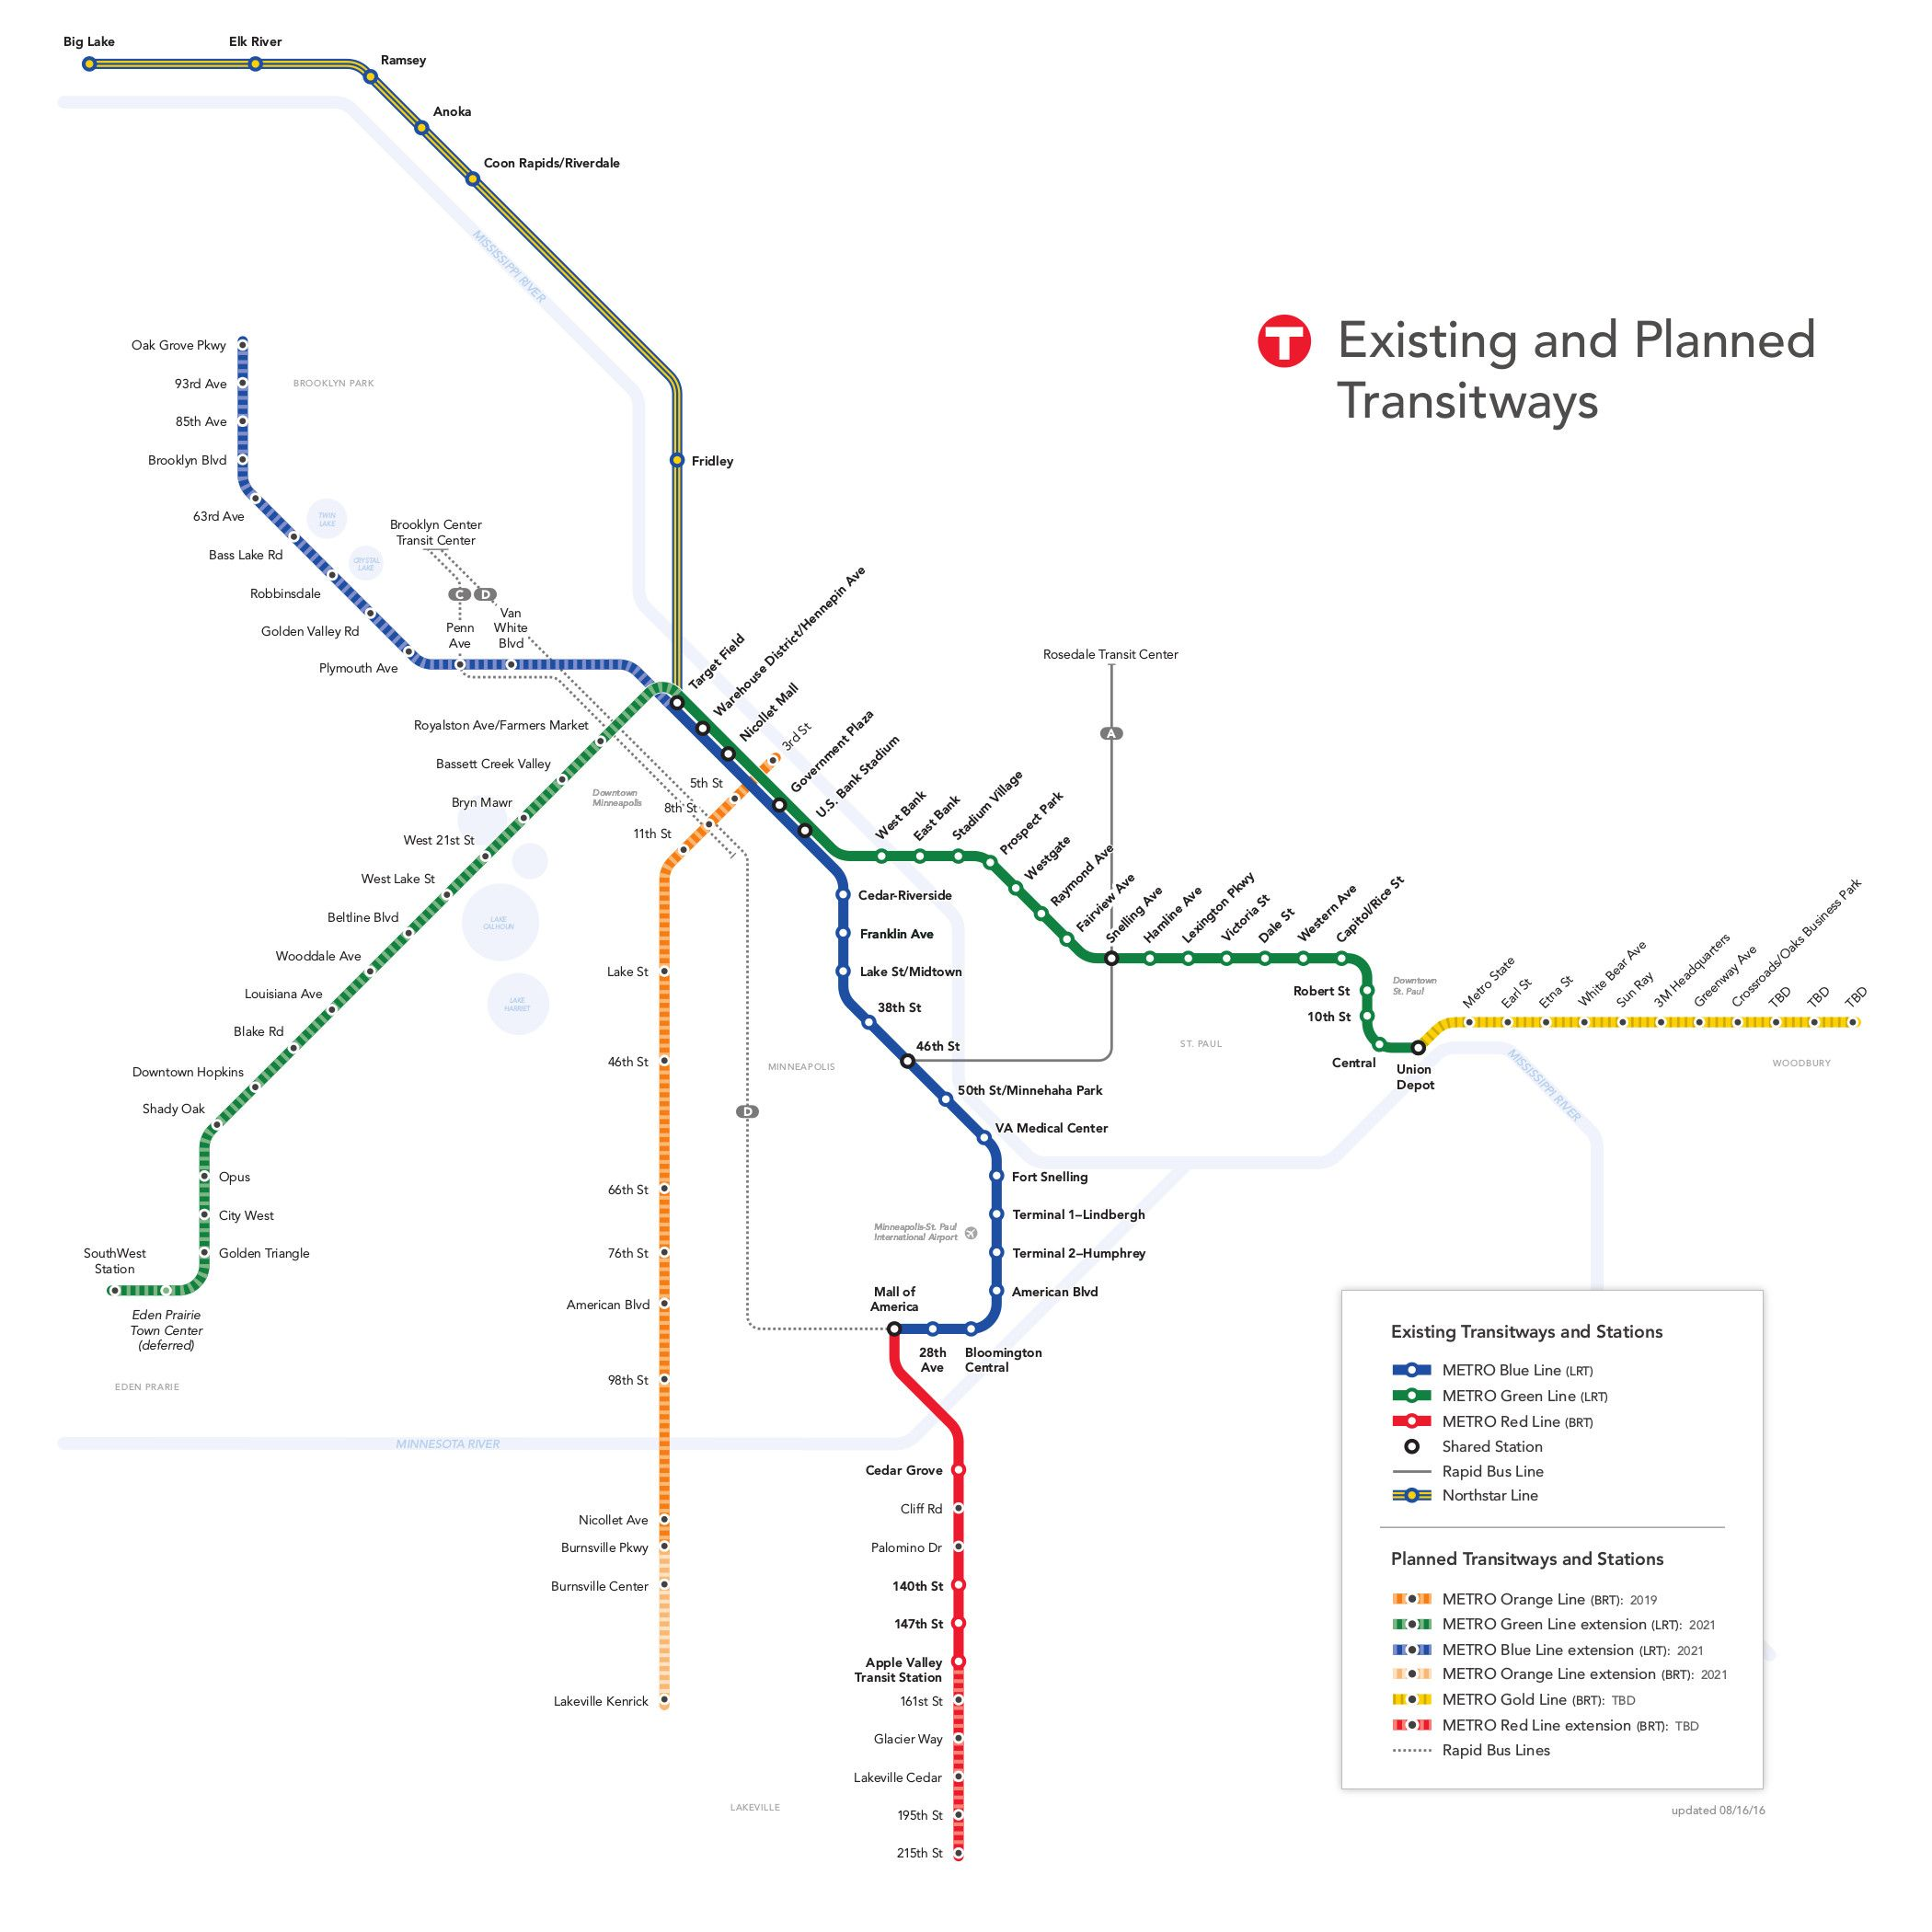 METRO is a rapid transit system serving the Minneapolis St Paul